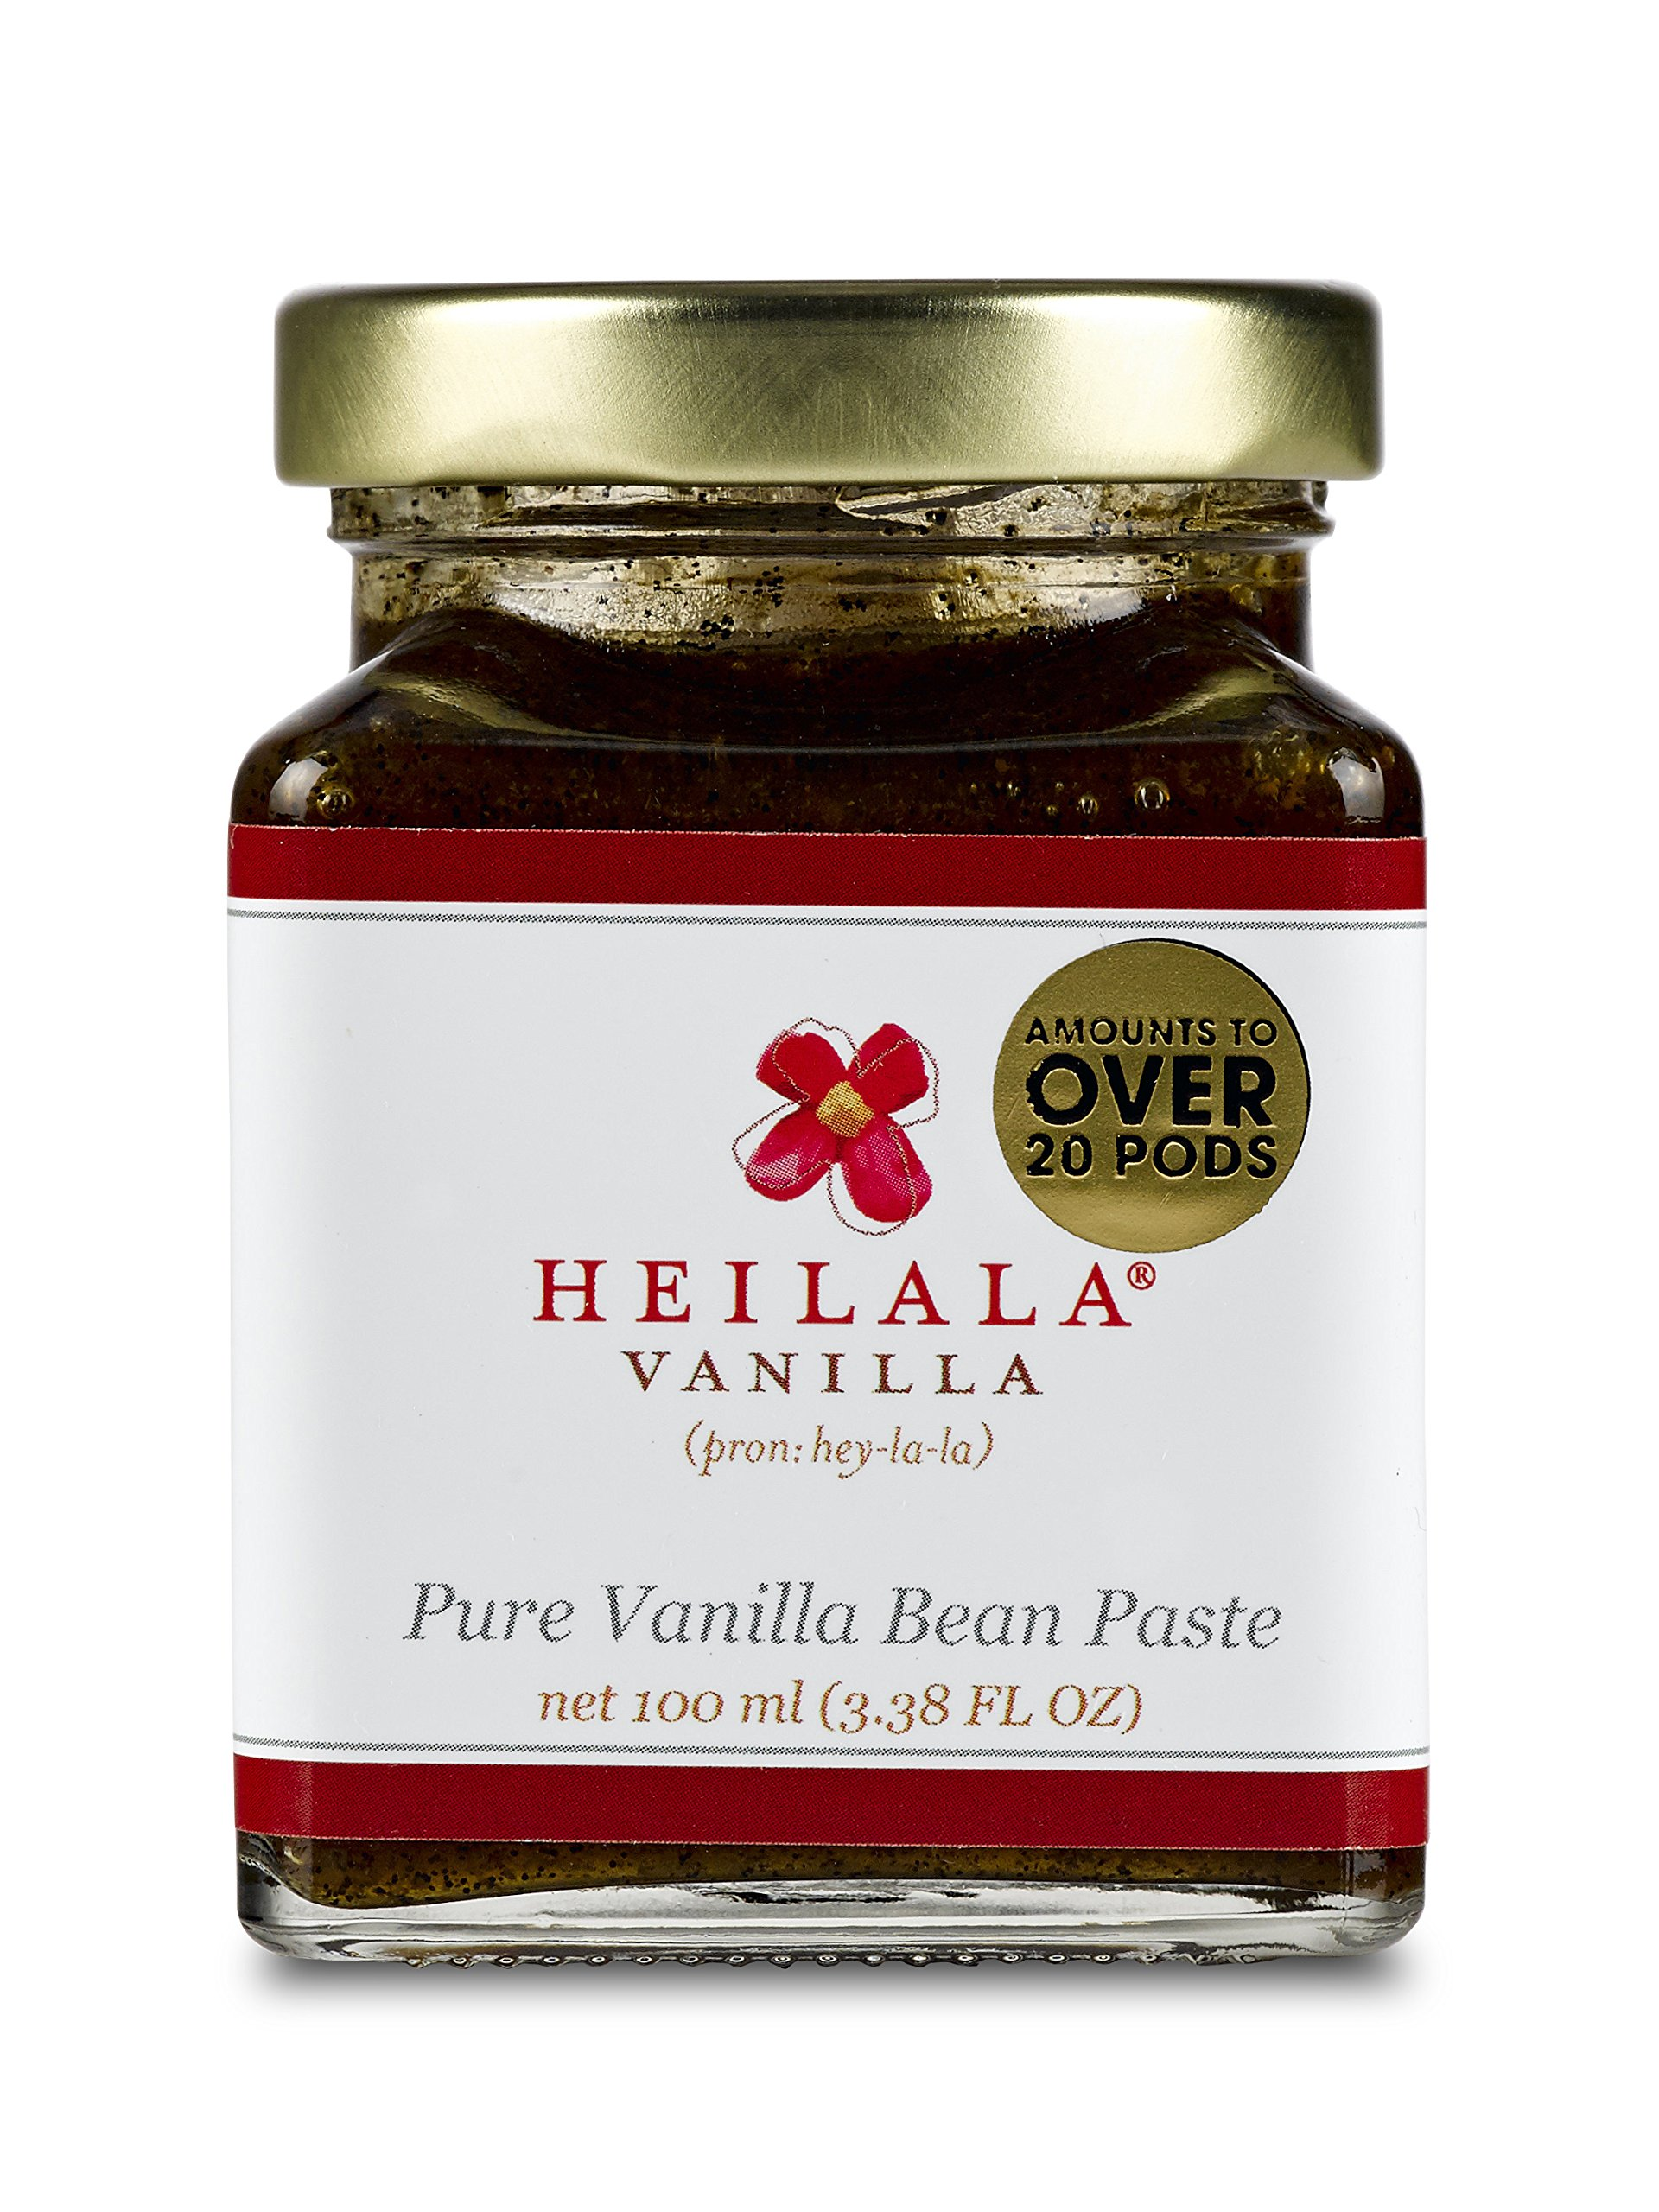 Pure Vanilla Bean Paste with Whole Seeds from Organically Grown Vanilla Beans 3.38 fl oz Glass Jar